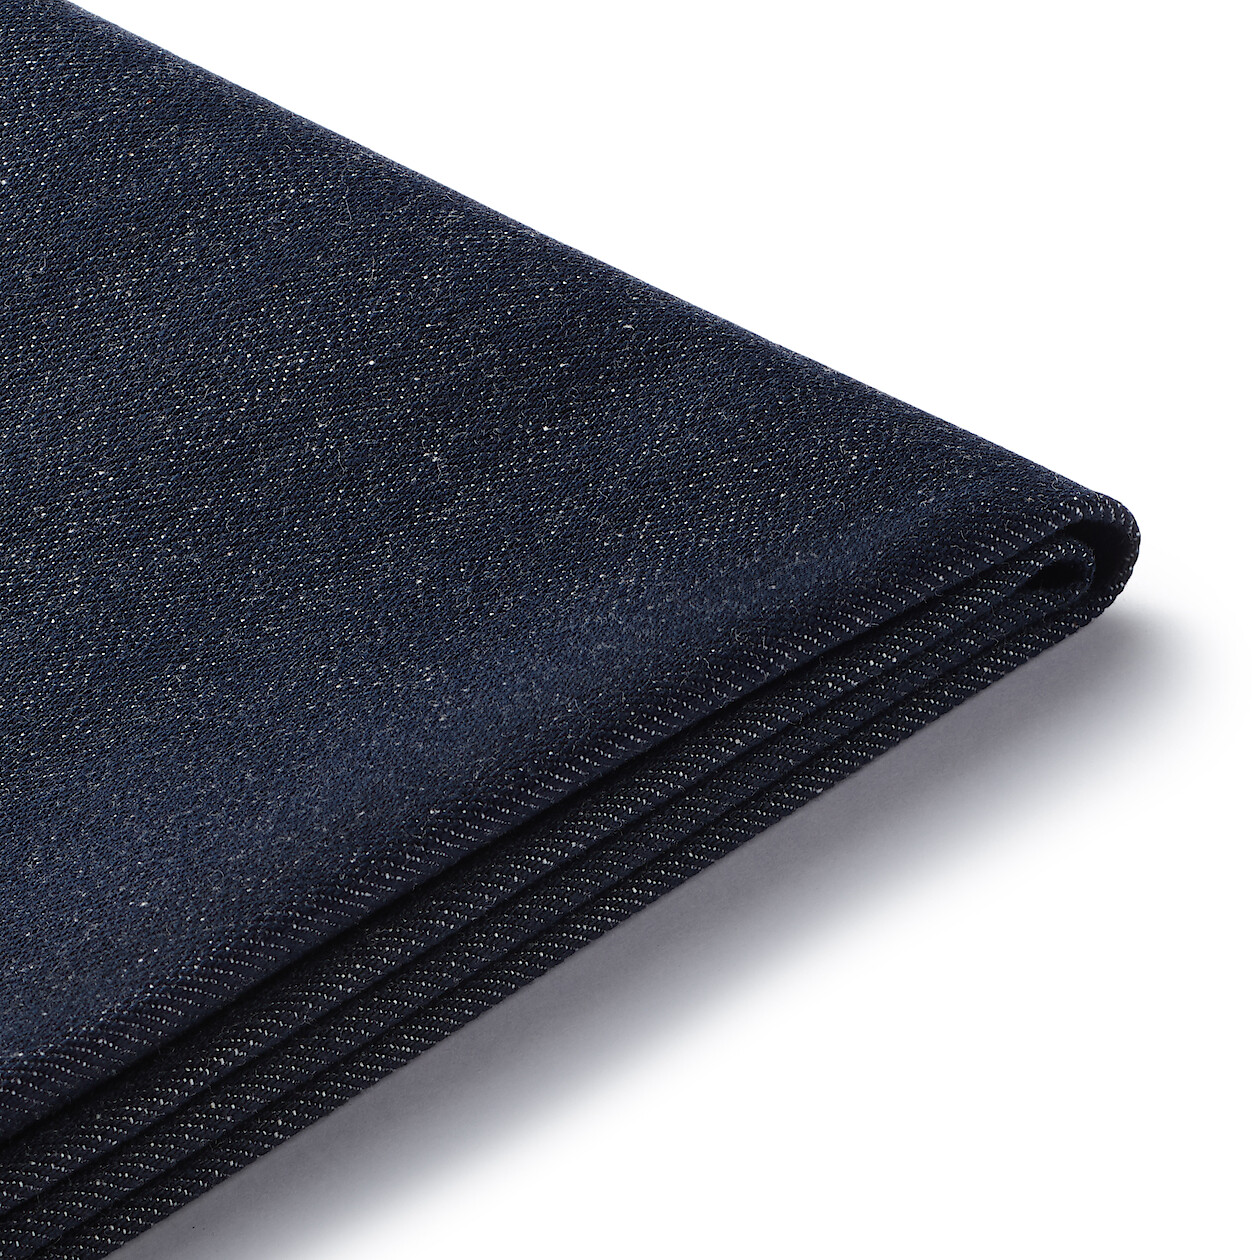 COTTON DENIM COVER / HIGH BACK RECLINING SOFA / 1S / NAVY | MUJI